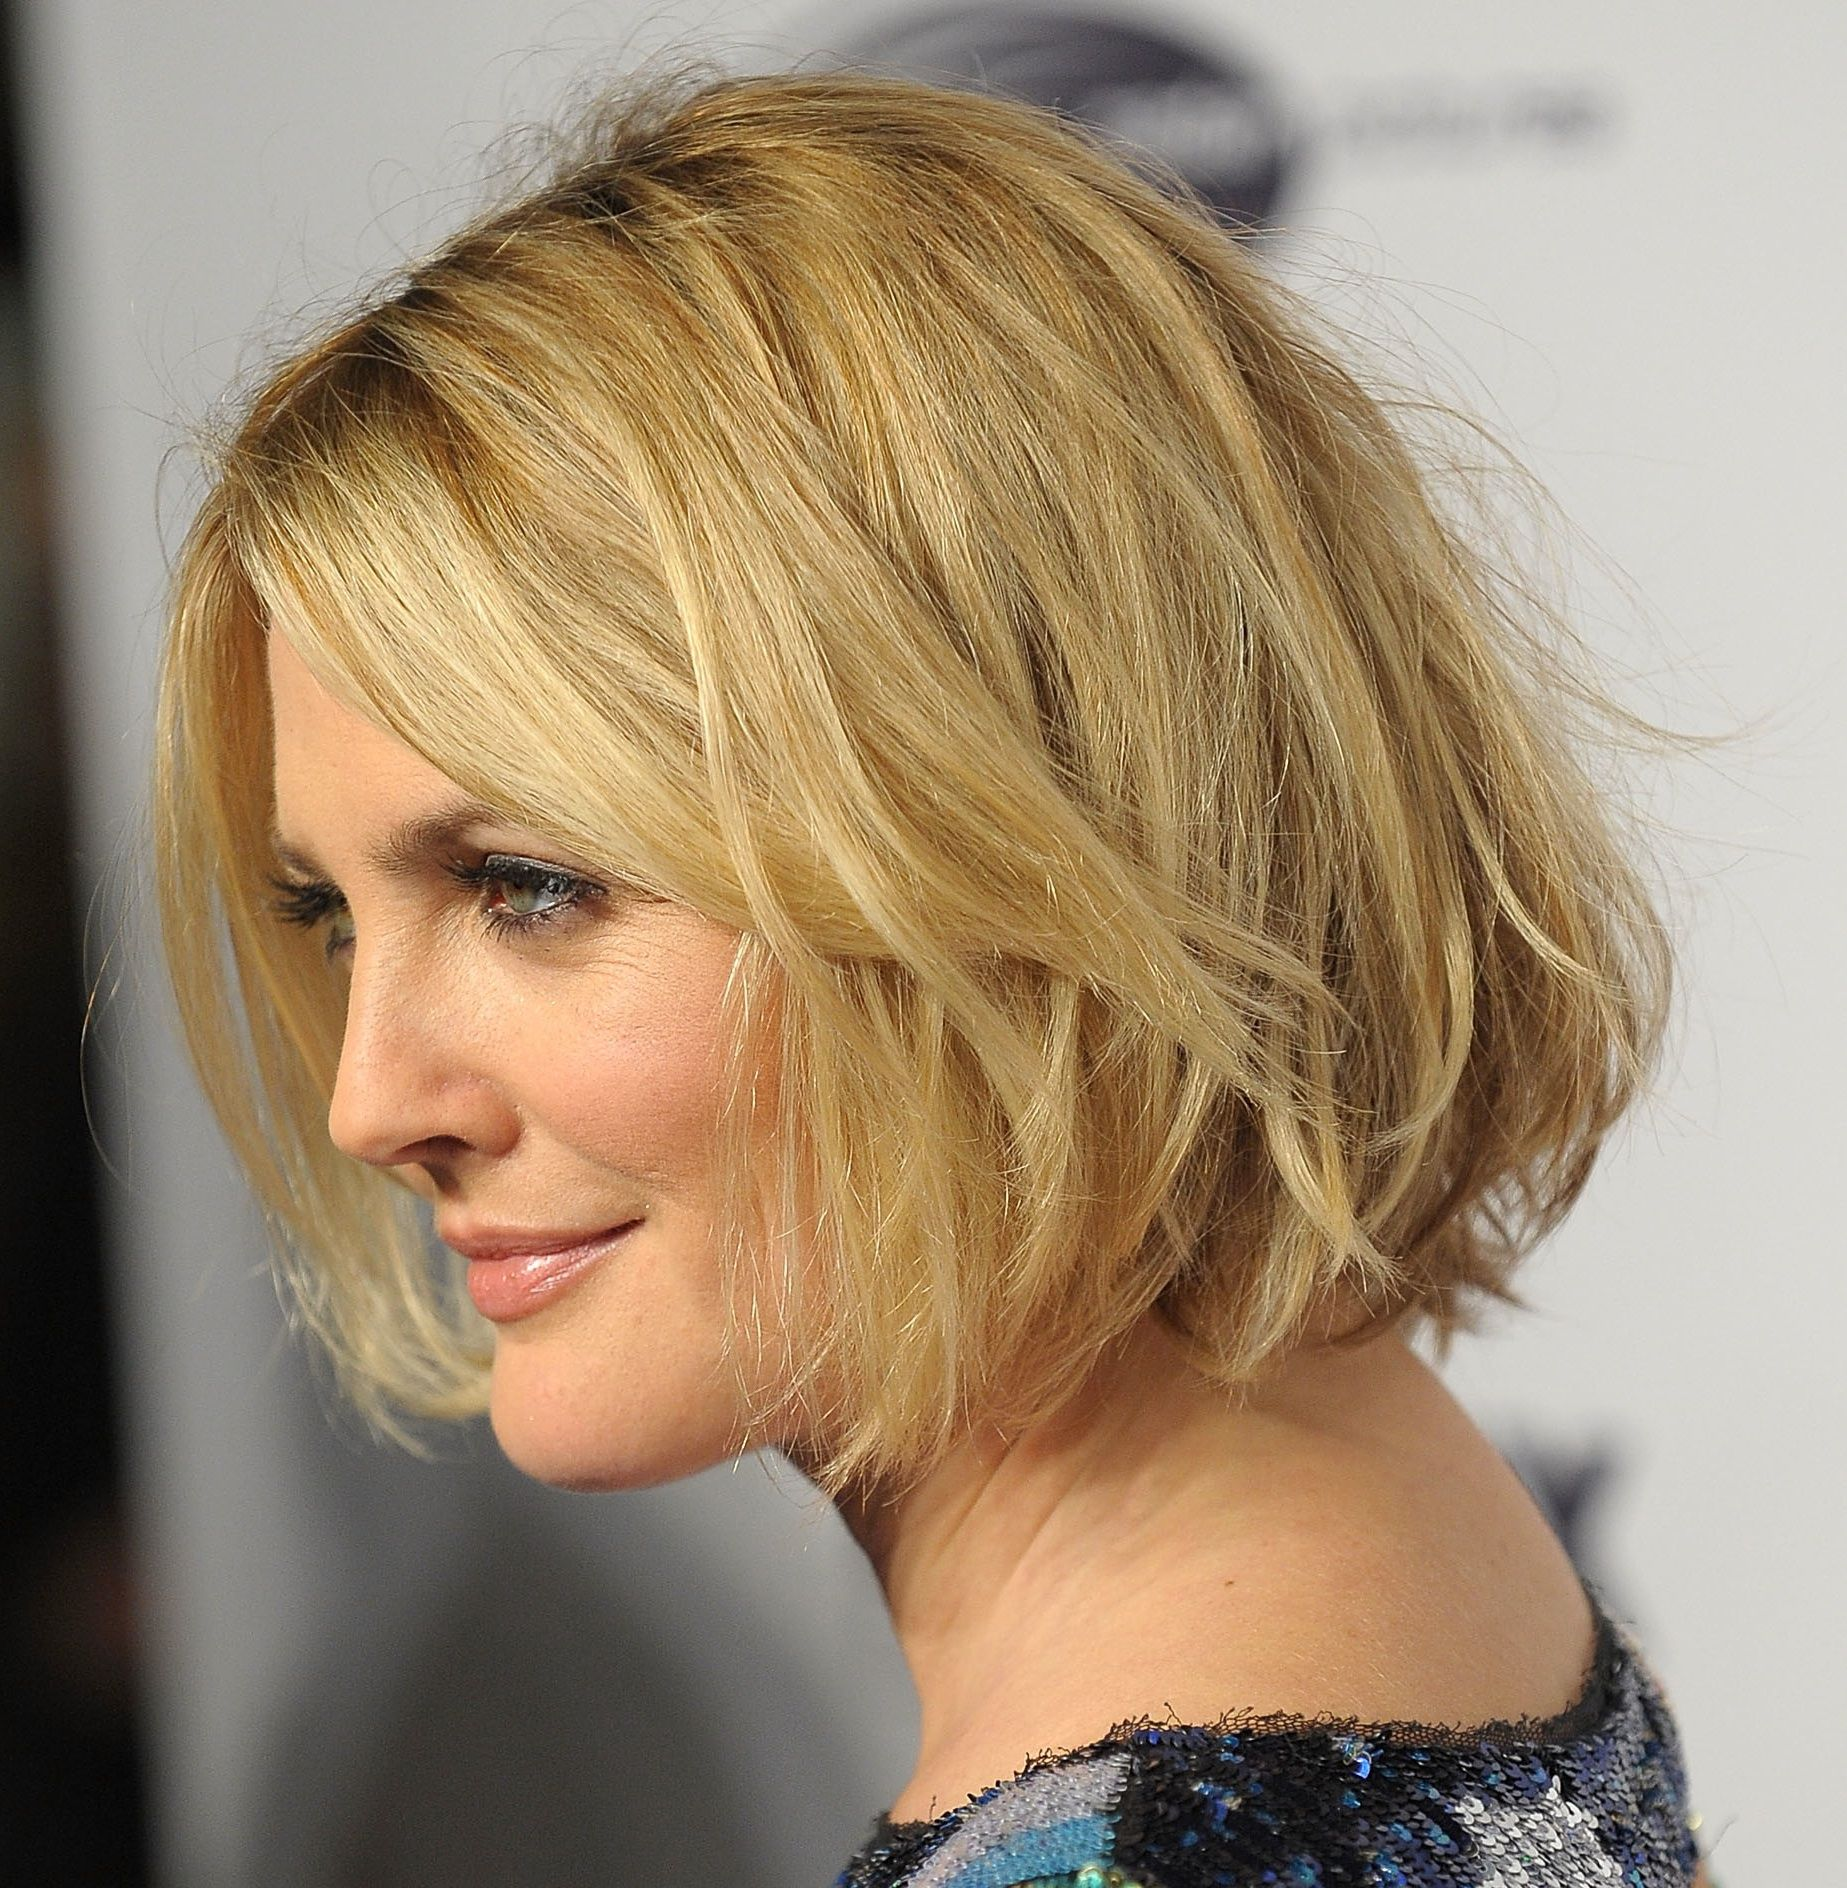 Haircuts for short to medium hair to have one of the cute haircuts